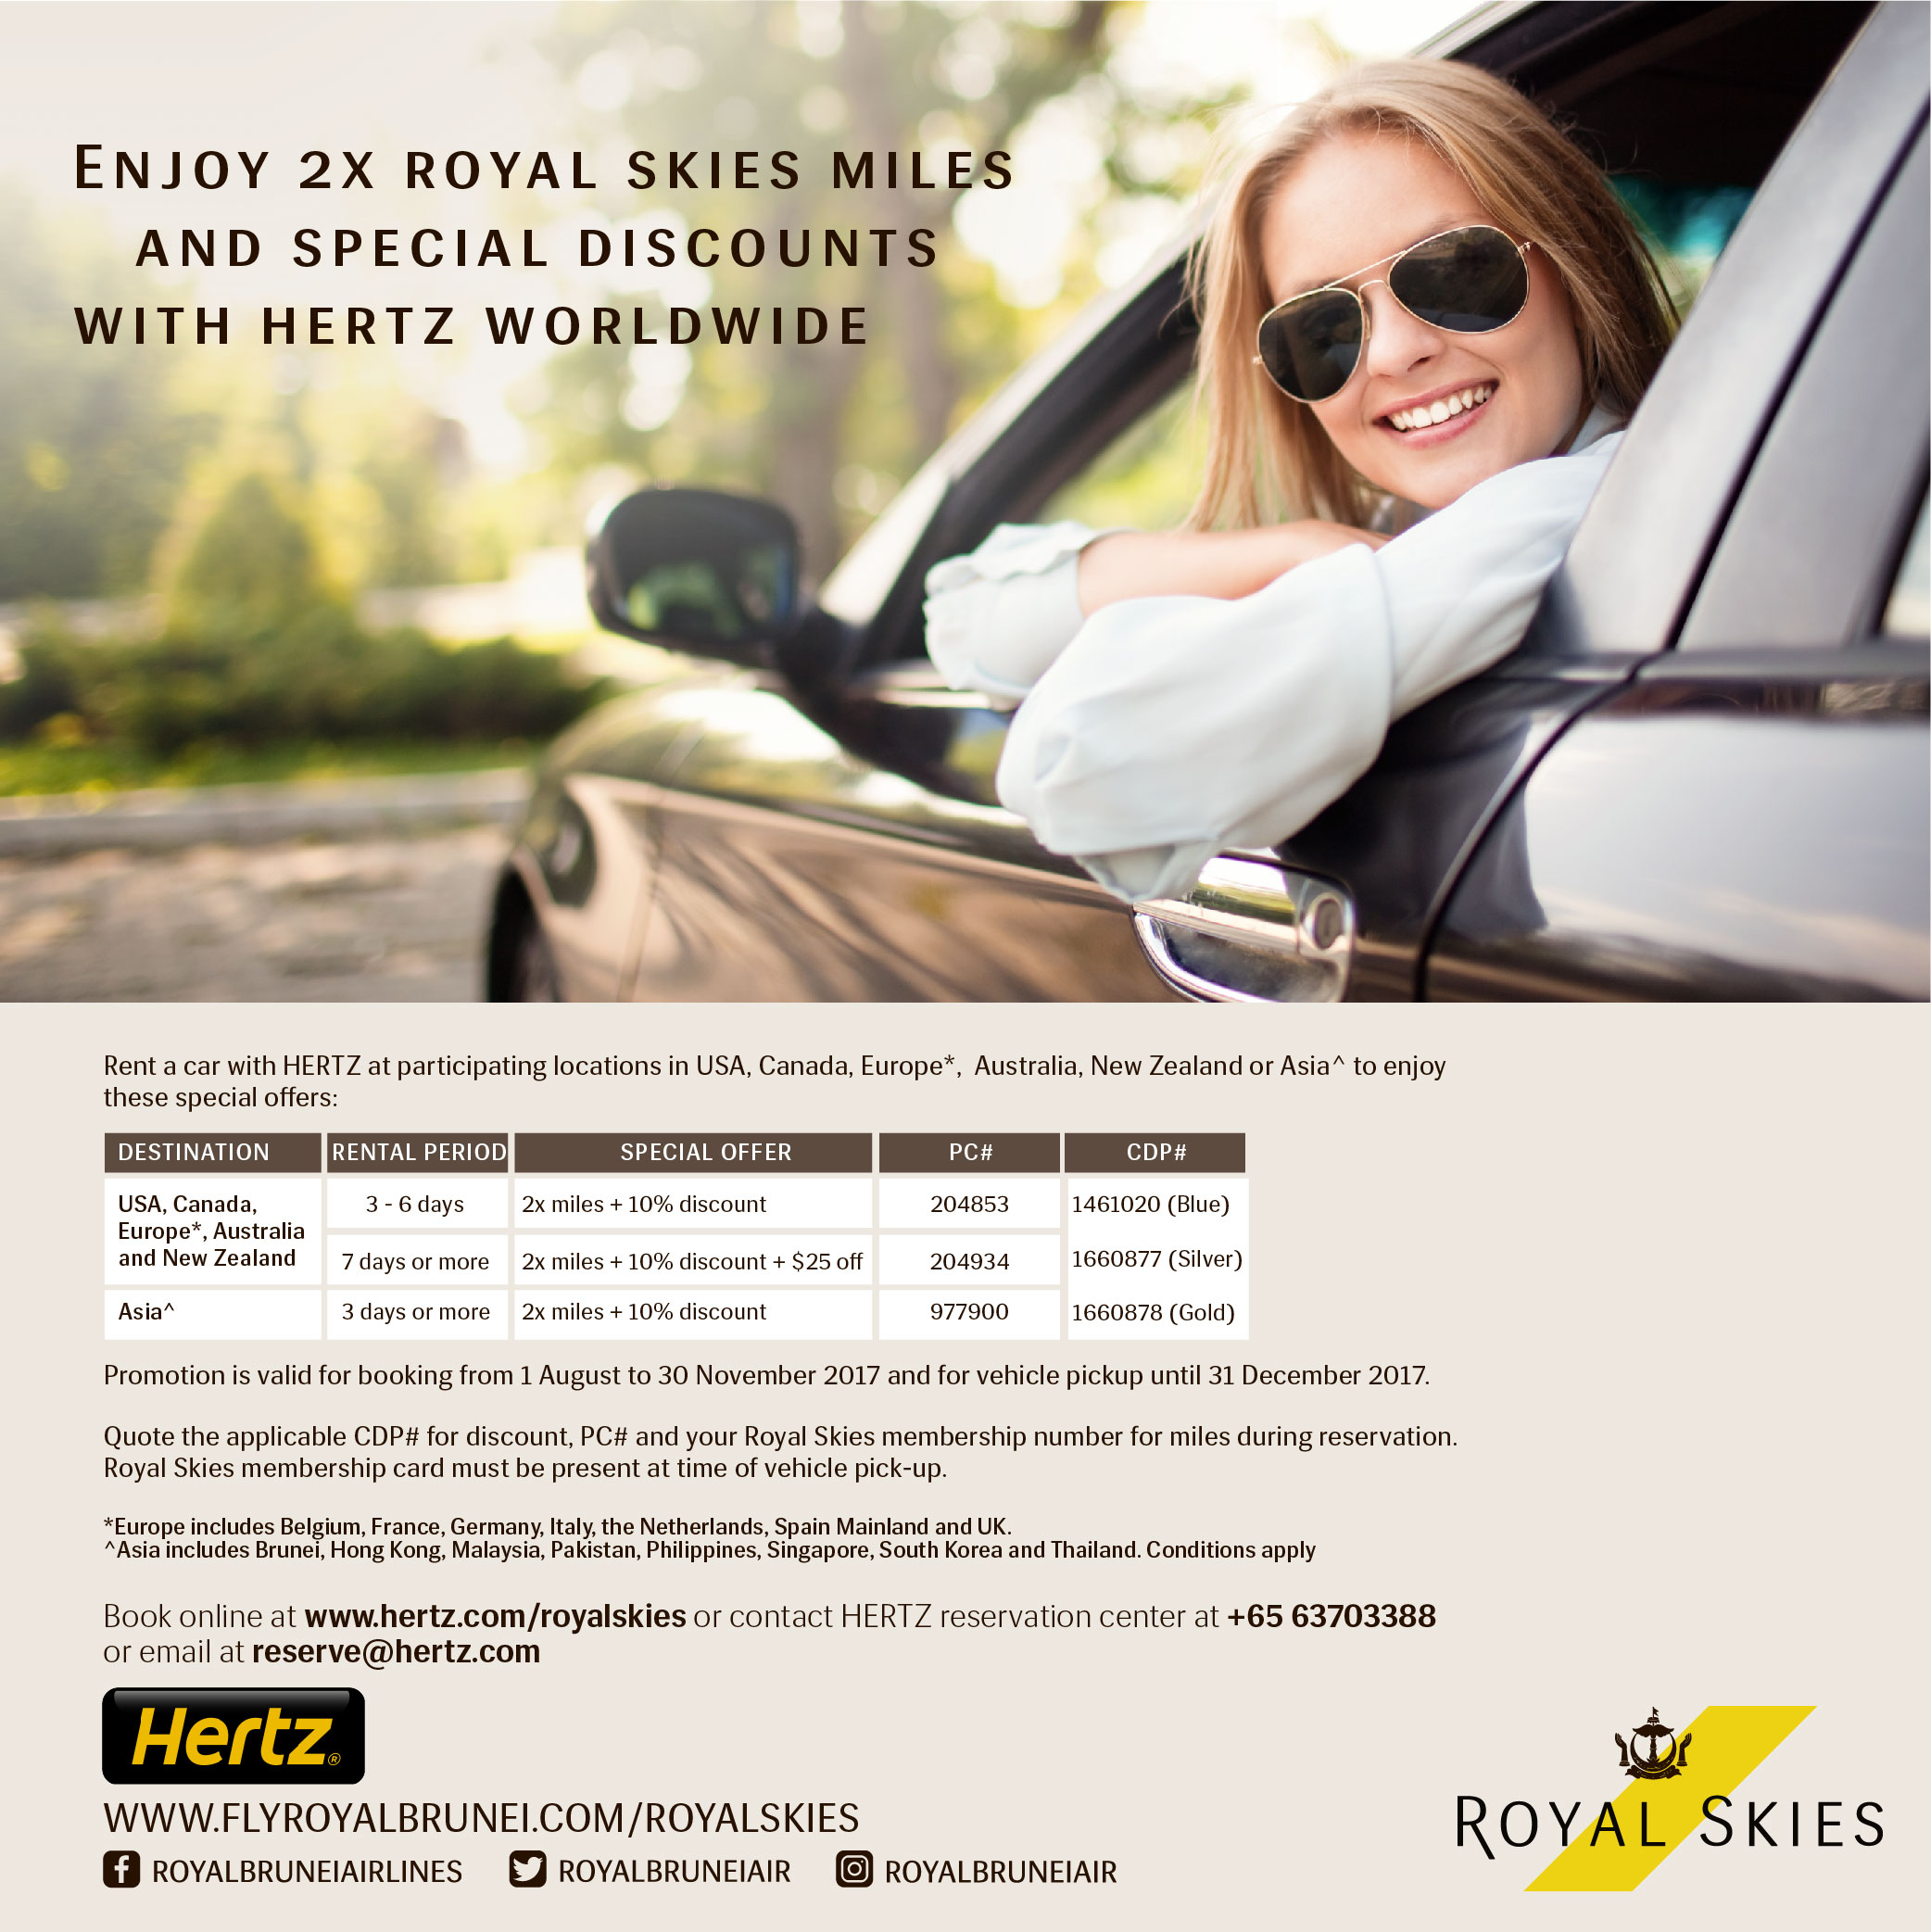 Royal-Brunei-Airlines-Hertz-Worldwide-Offer - Airlines-Airports